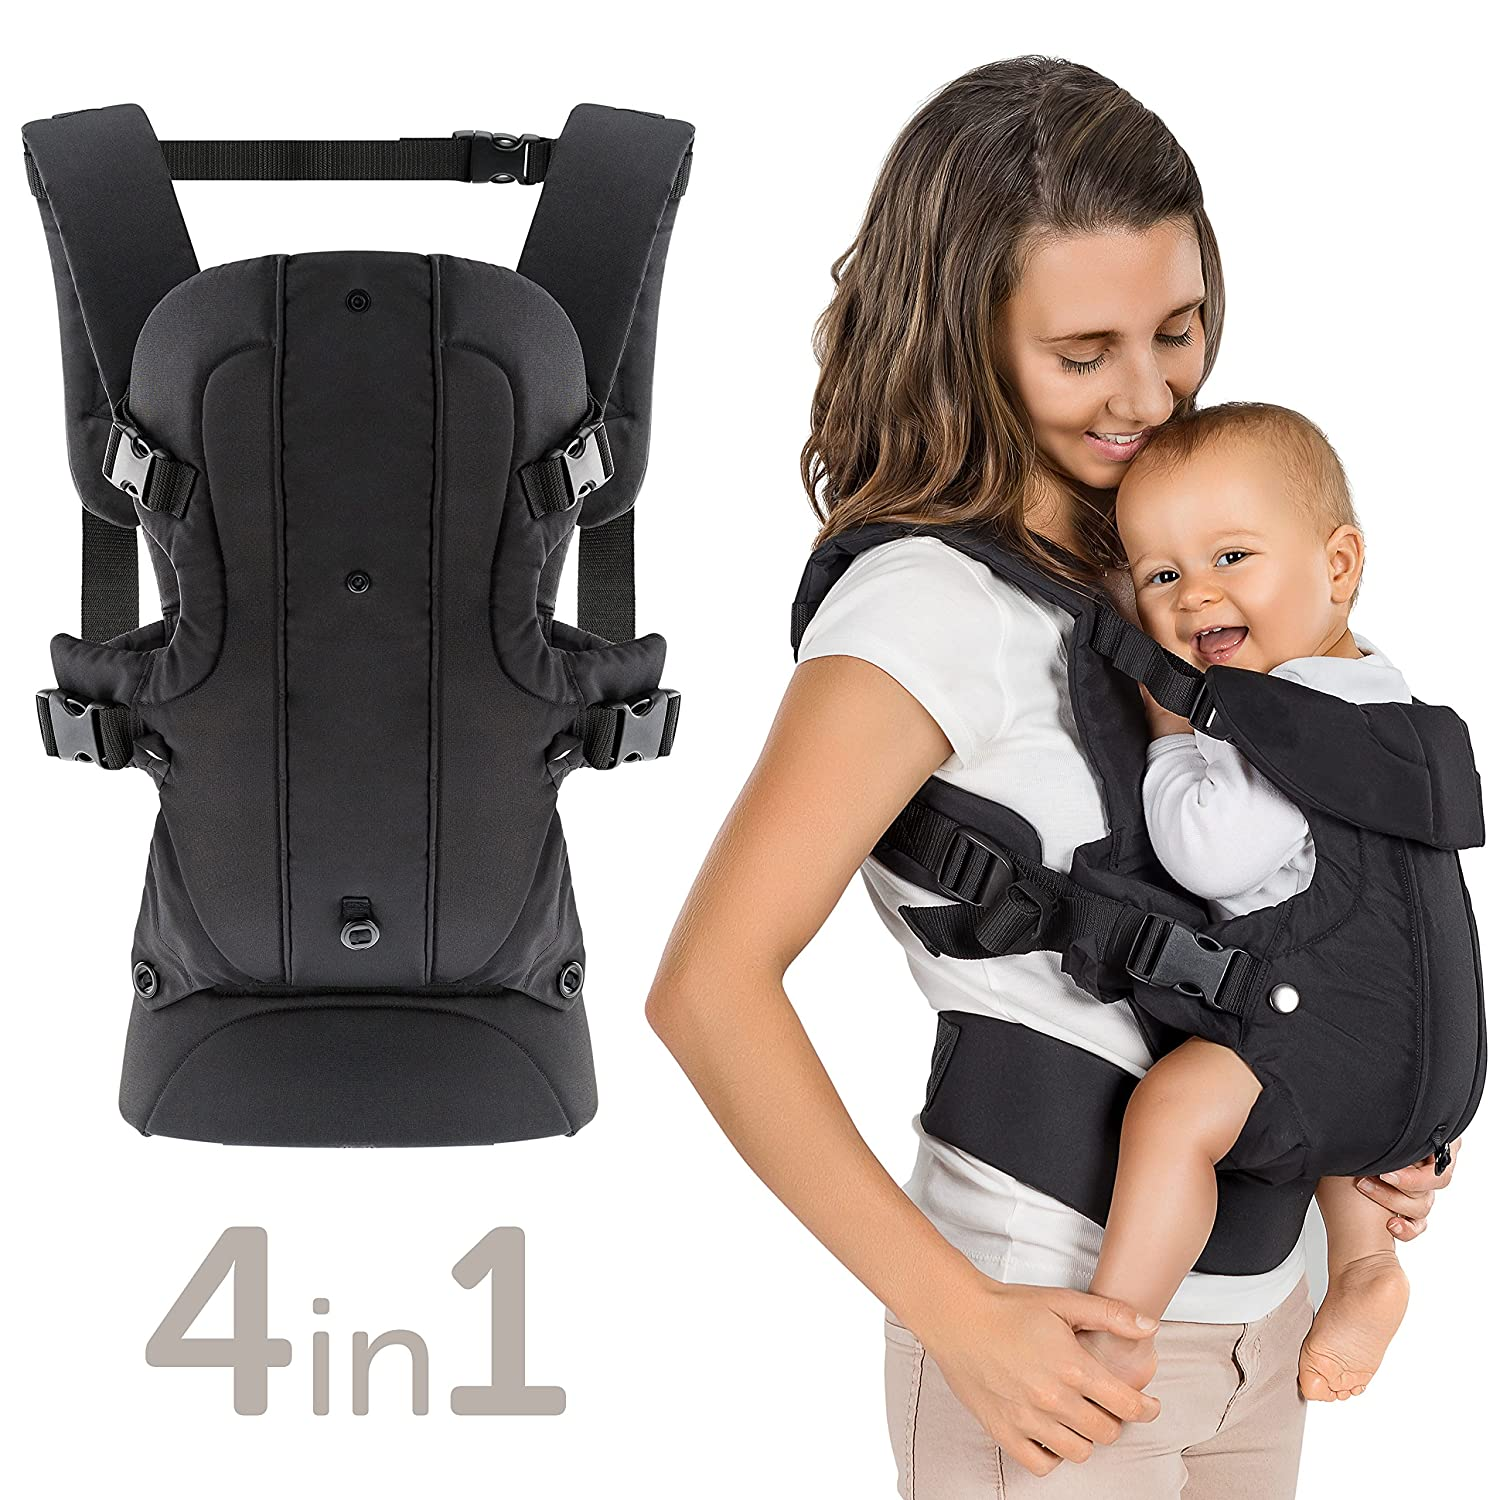 f3413db6f4a Fillikid 4-in-1 Convertible Baby Carrier - Adjustable   Ergonomic Front and Back  Child Carrier for Newborn